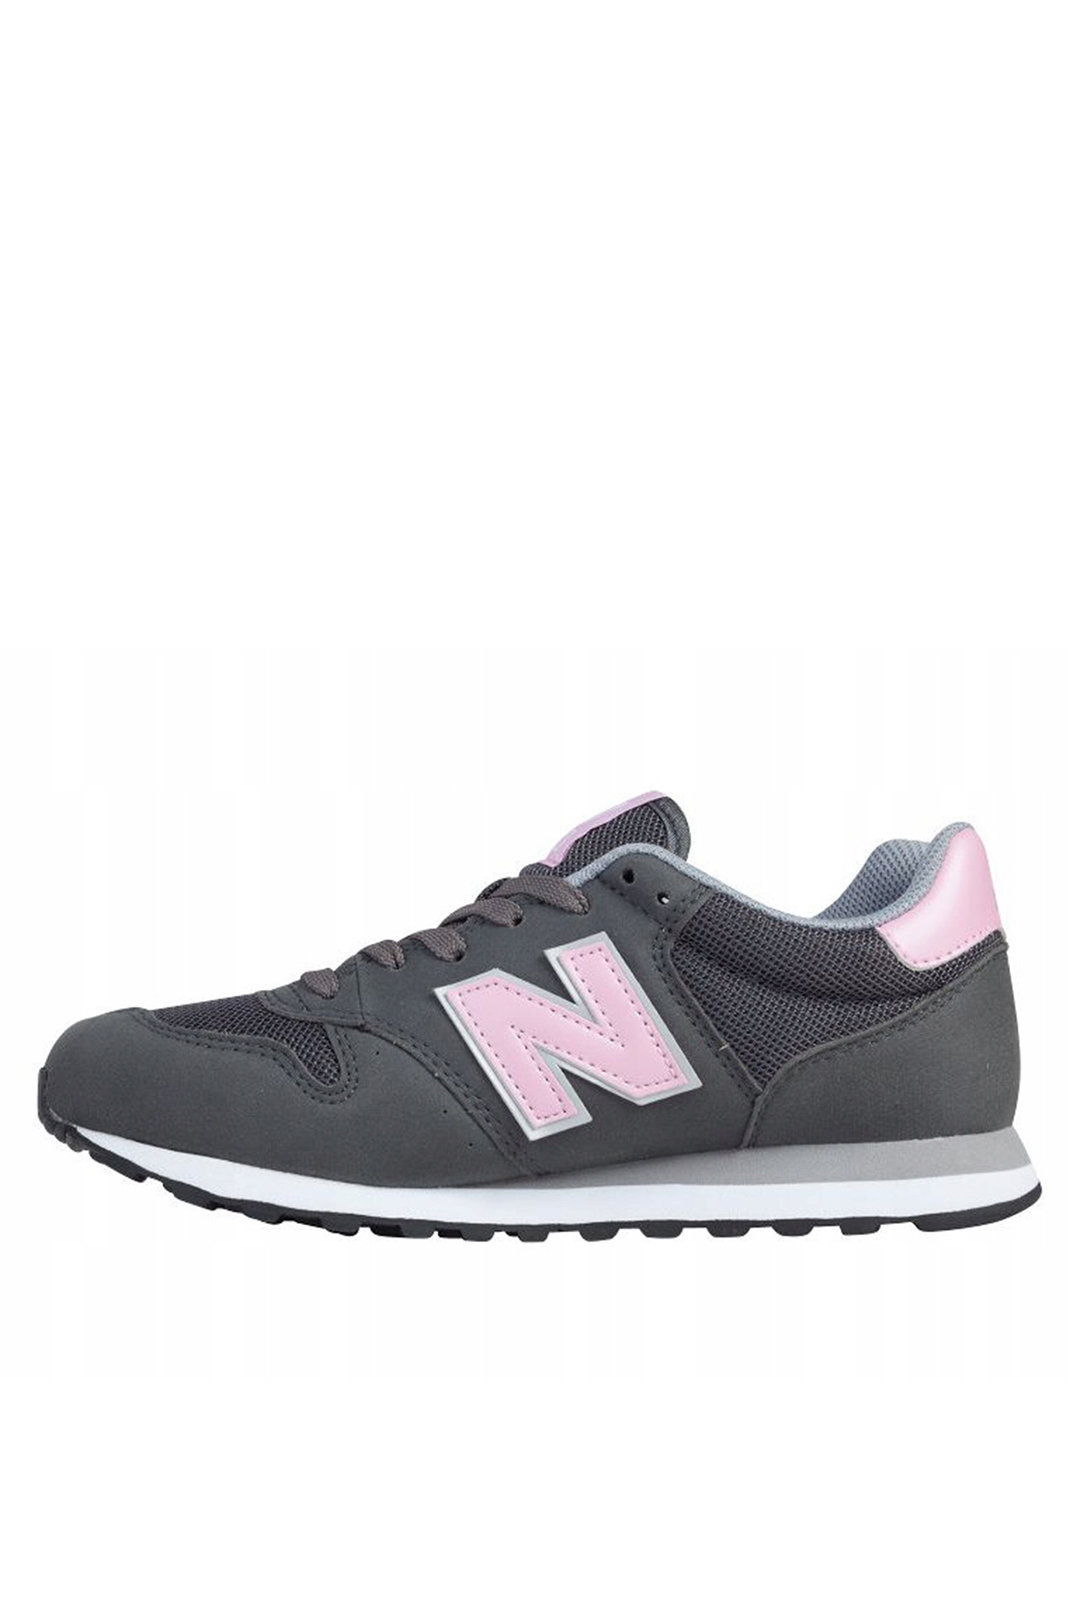 Baskets / Sneakers  New balance GW500 GSP GSP